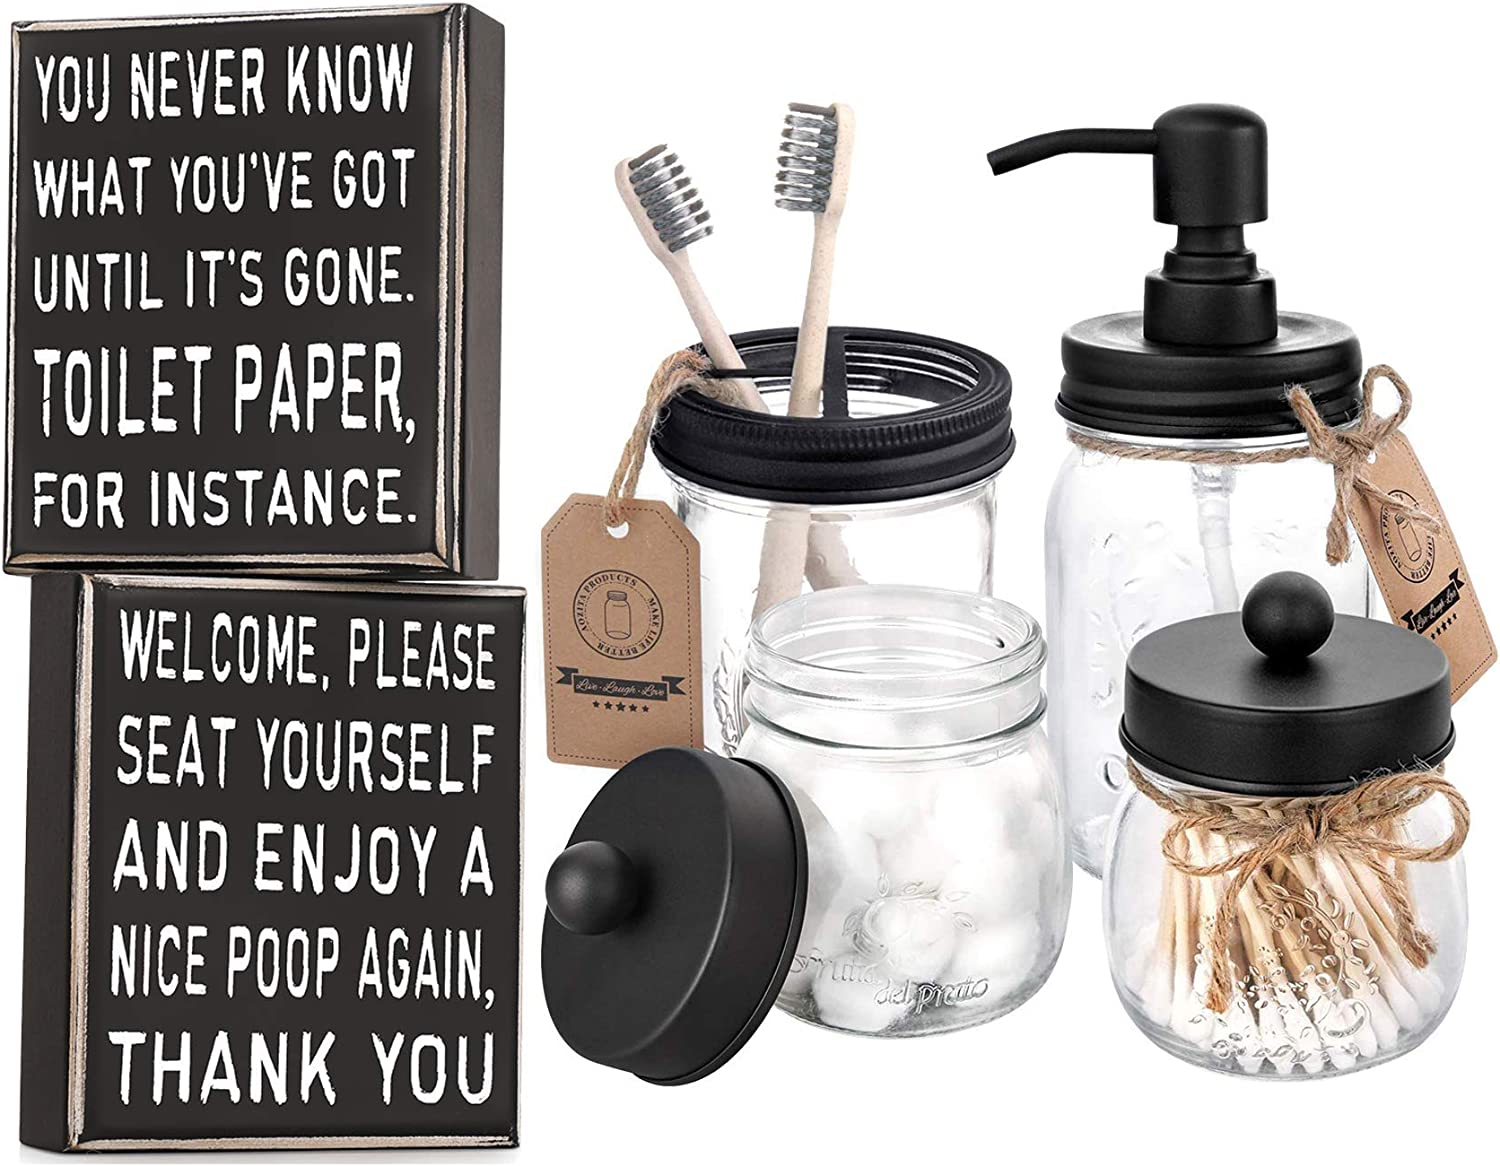 AOZITA 2 Sides, Home Bathroom Decor Classic Box Sign, 5 x 6-Inches + Mason Jar Bathroom Accessories Set 4 Pcs - Mason Jar Soap Dispenser & 2 Apothecary Jars & Toothbrush Holder